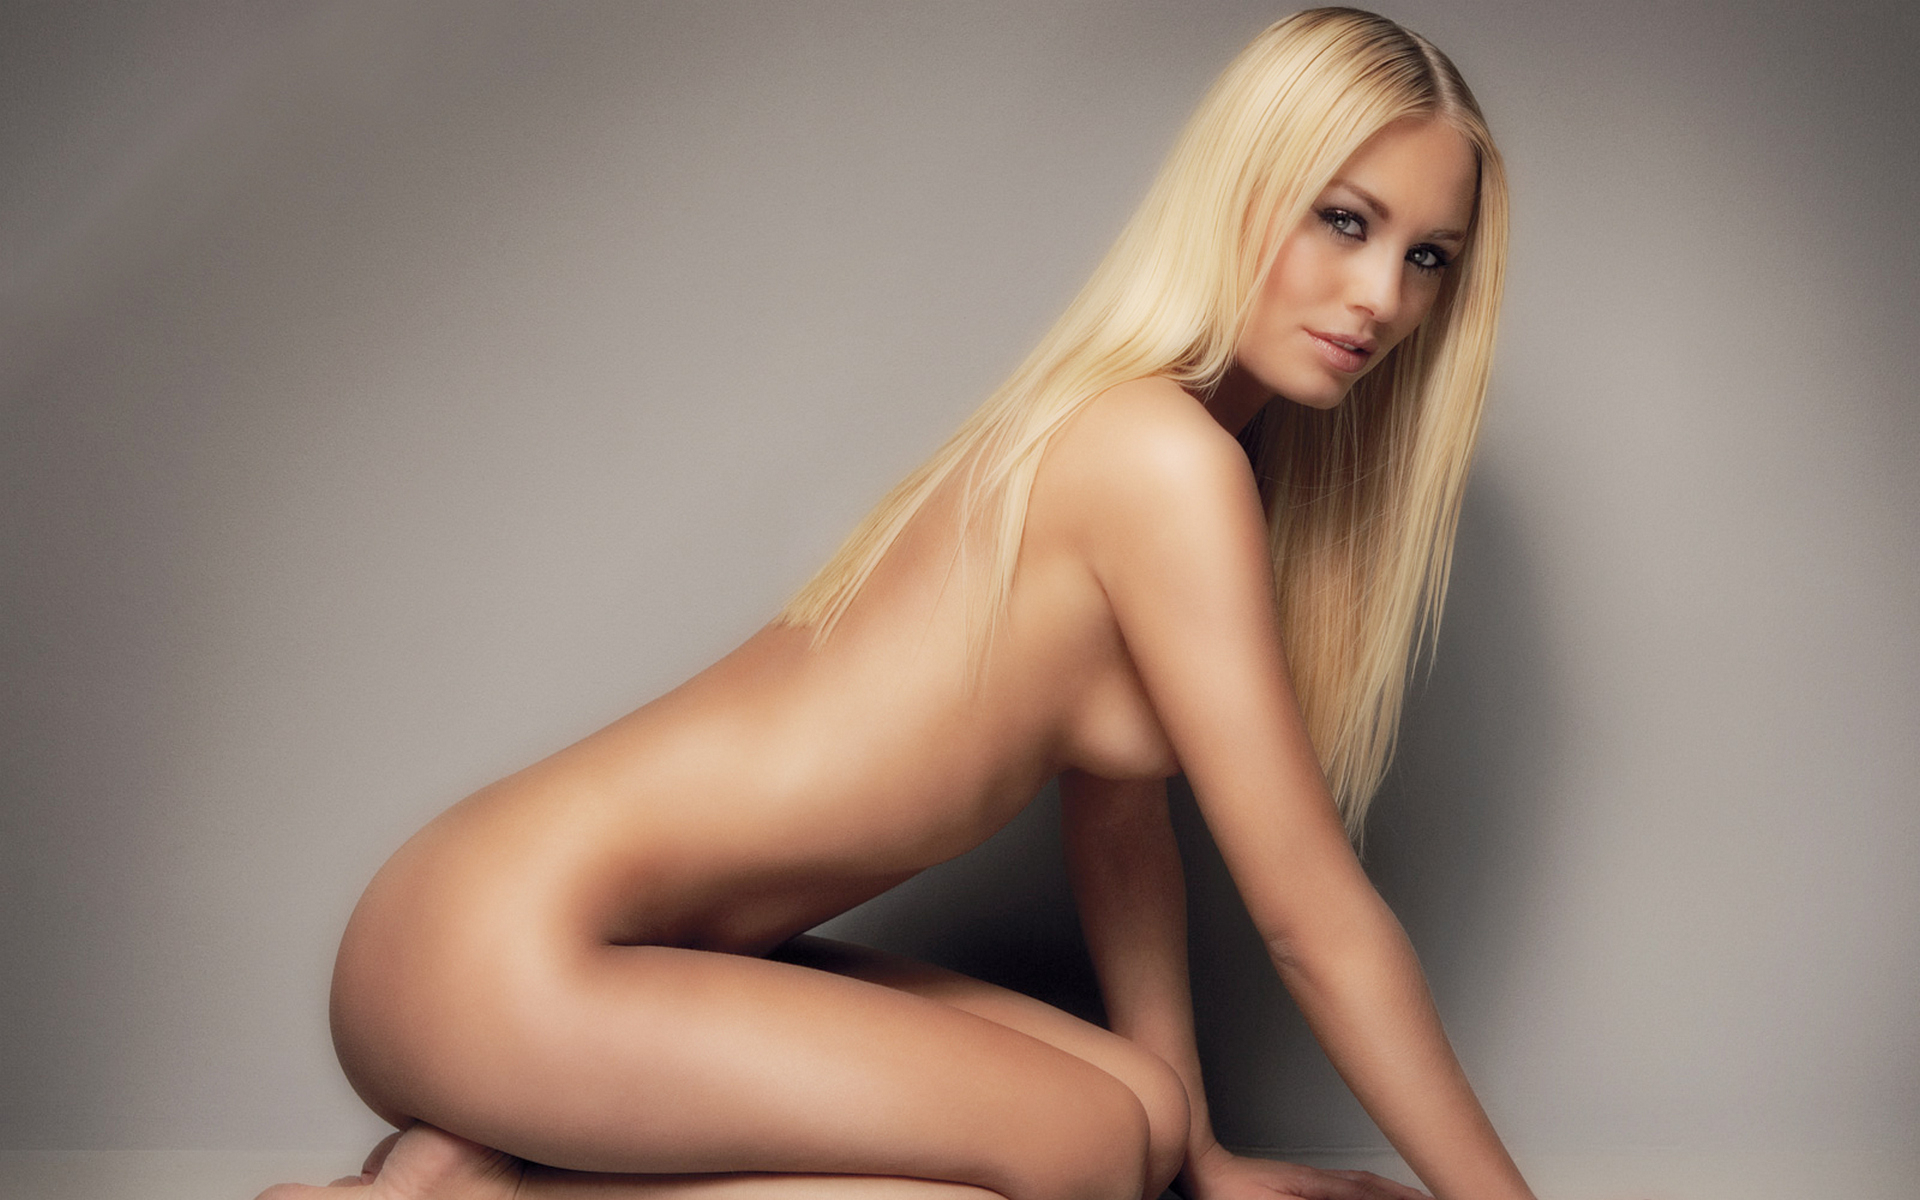 Beautiful blonde skinny girl diana strips sexy dress to and stretches naked